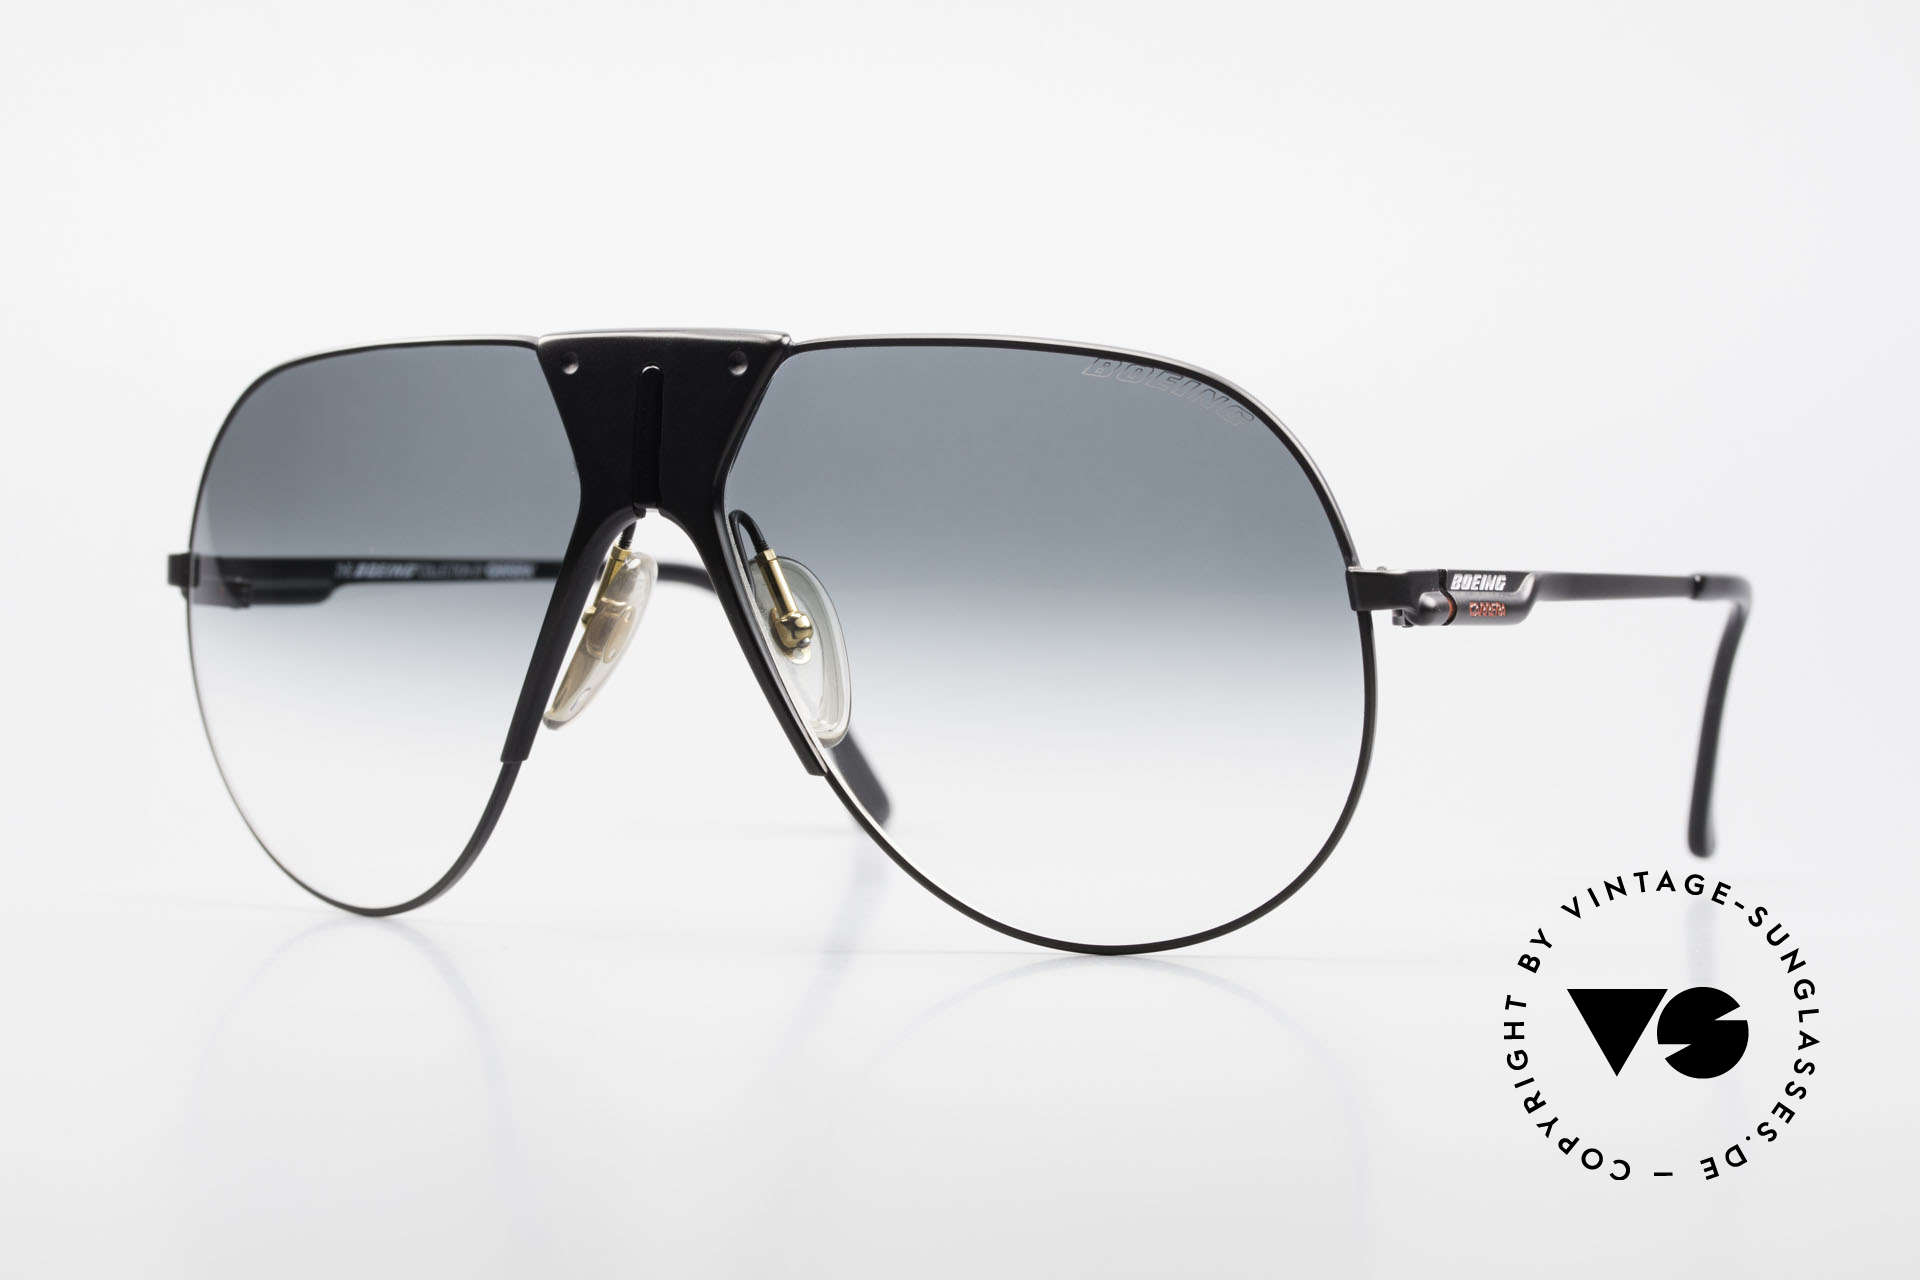 Boeing 5701 Rare XL 80's Pilots Shades, The BOEING Collection by Carrera from 1988/1989, Made for Men